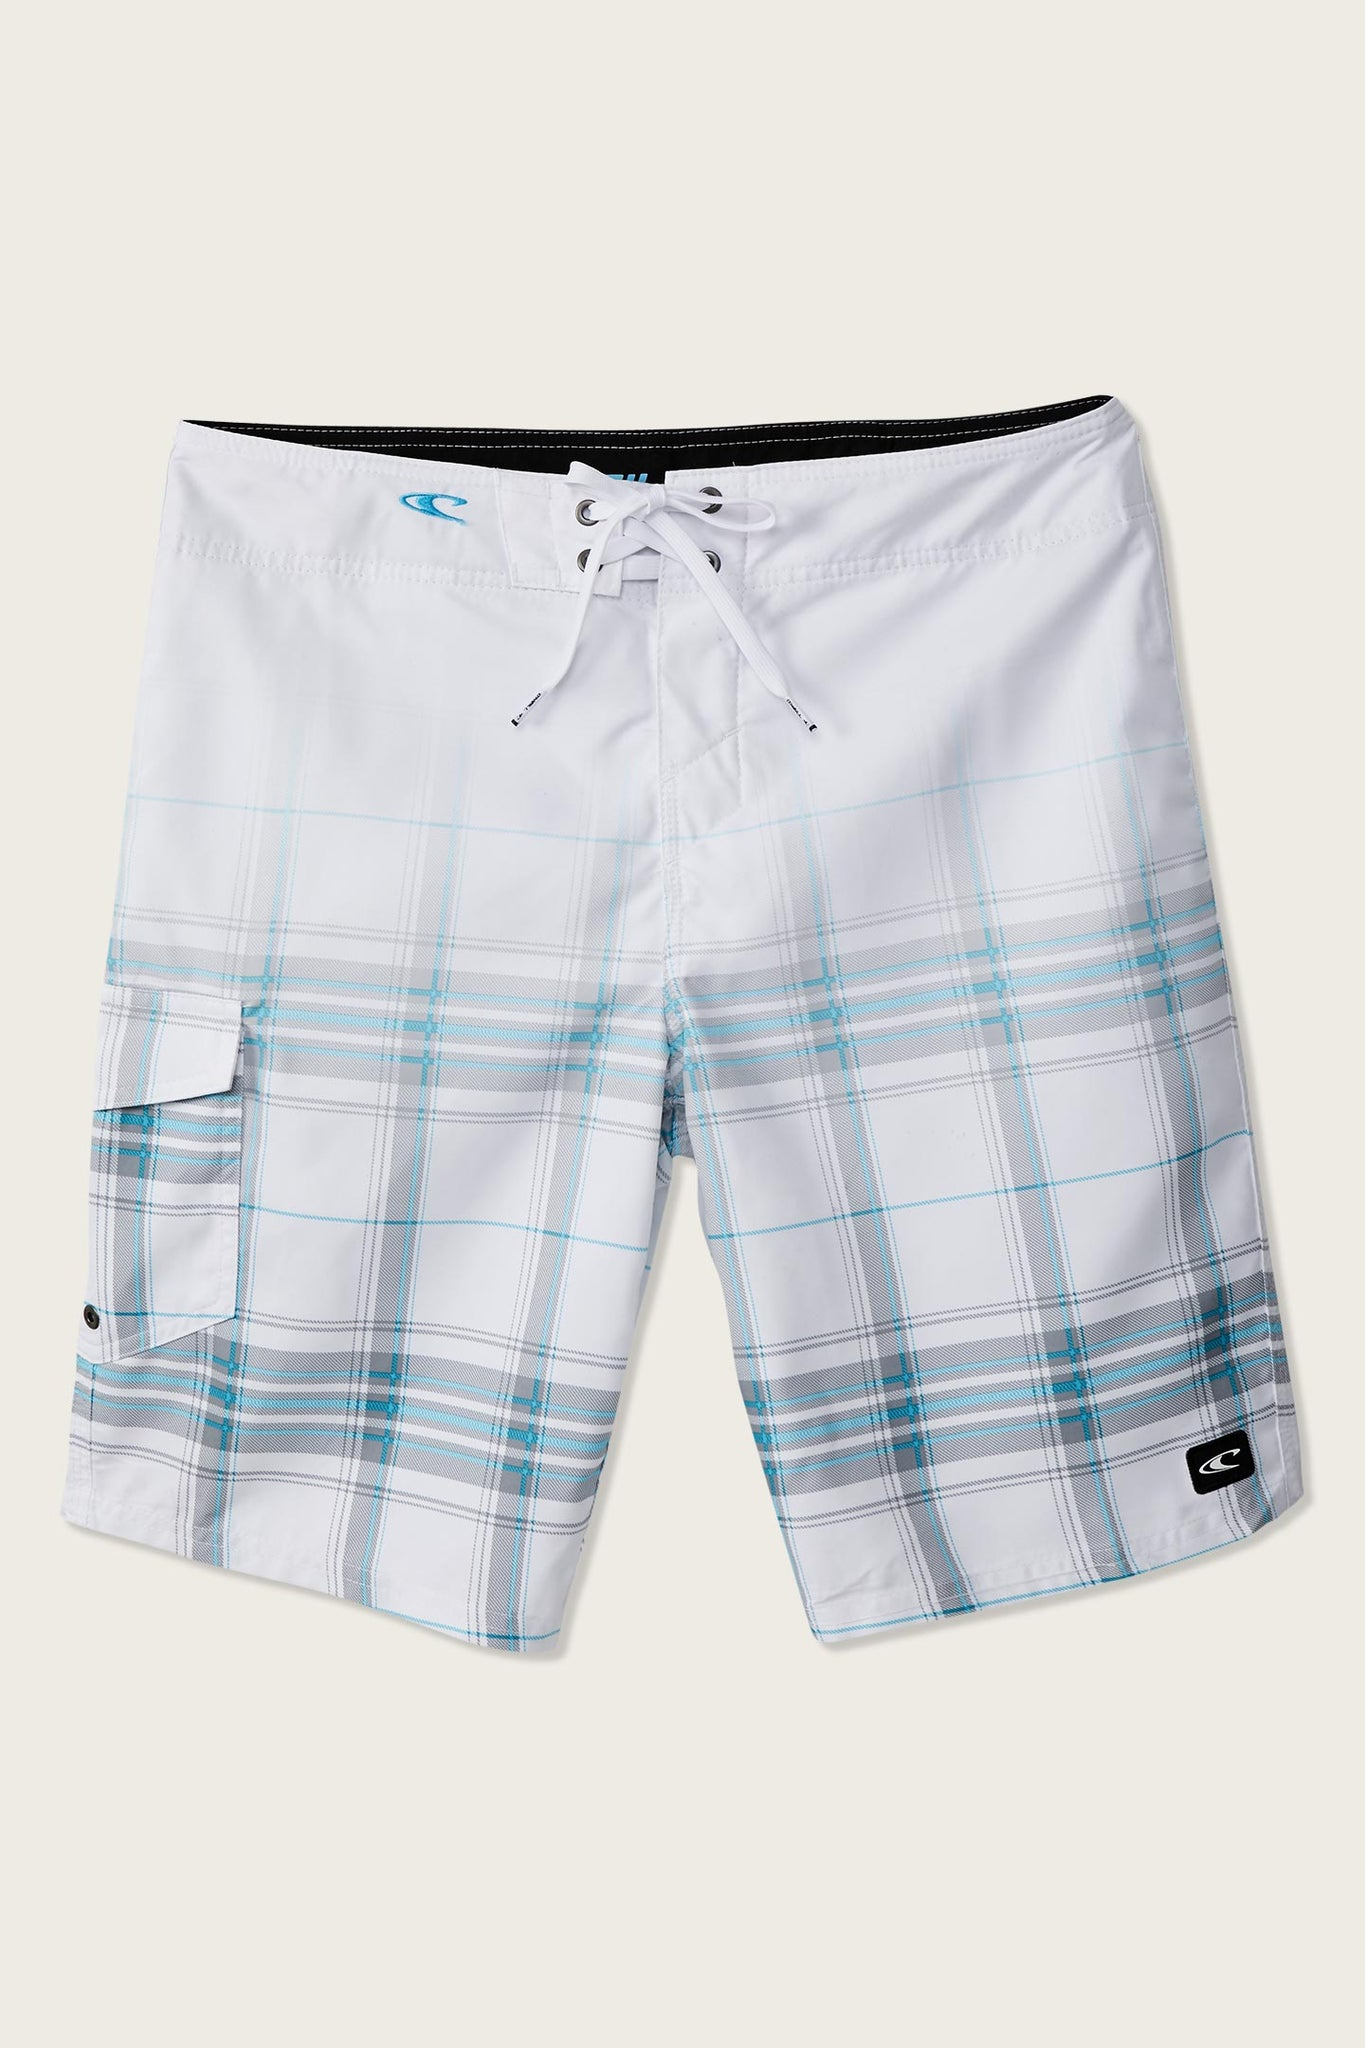 Santa Cruz Plaid Boardshorts - White | O'Neill